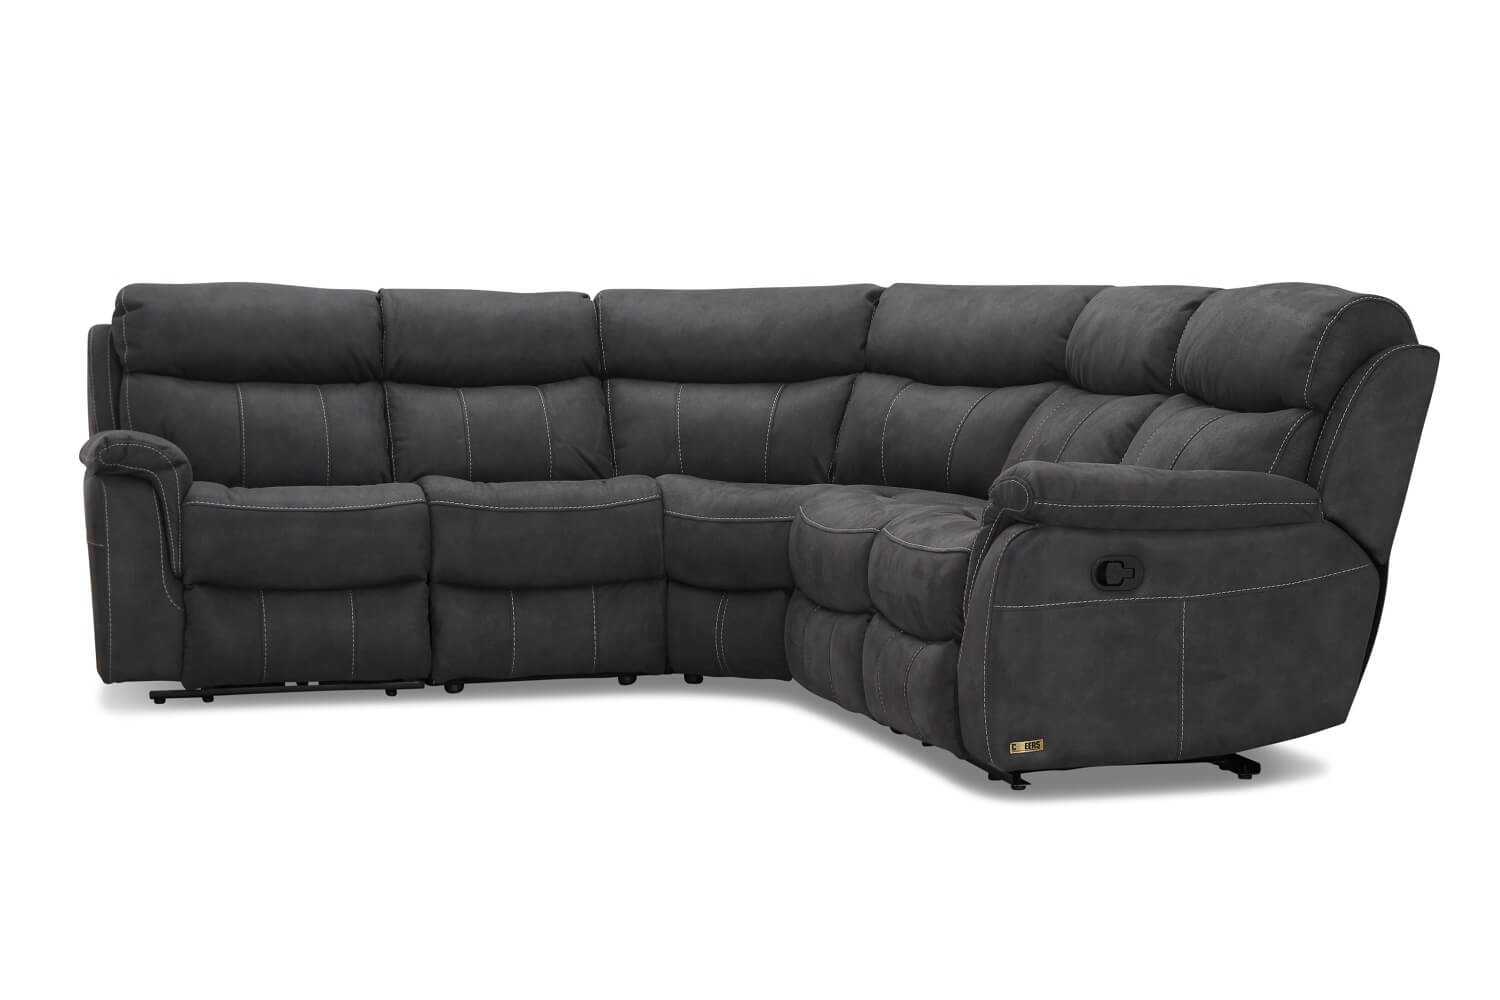 Image of   Arizona hjørnesofa recliner grå